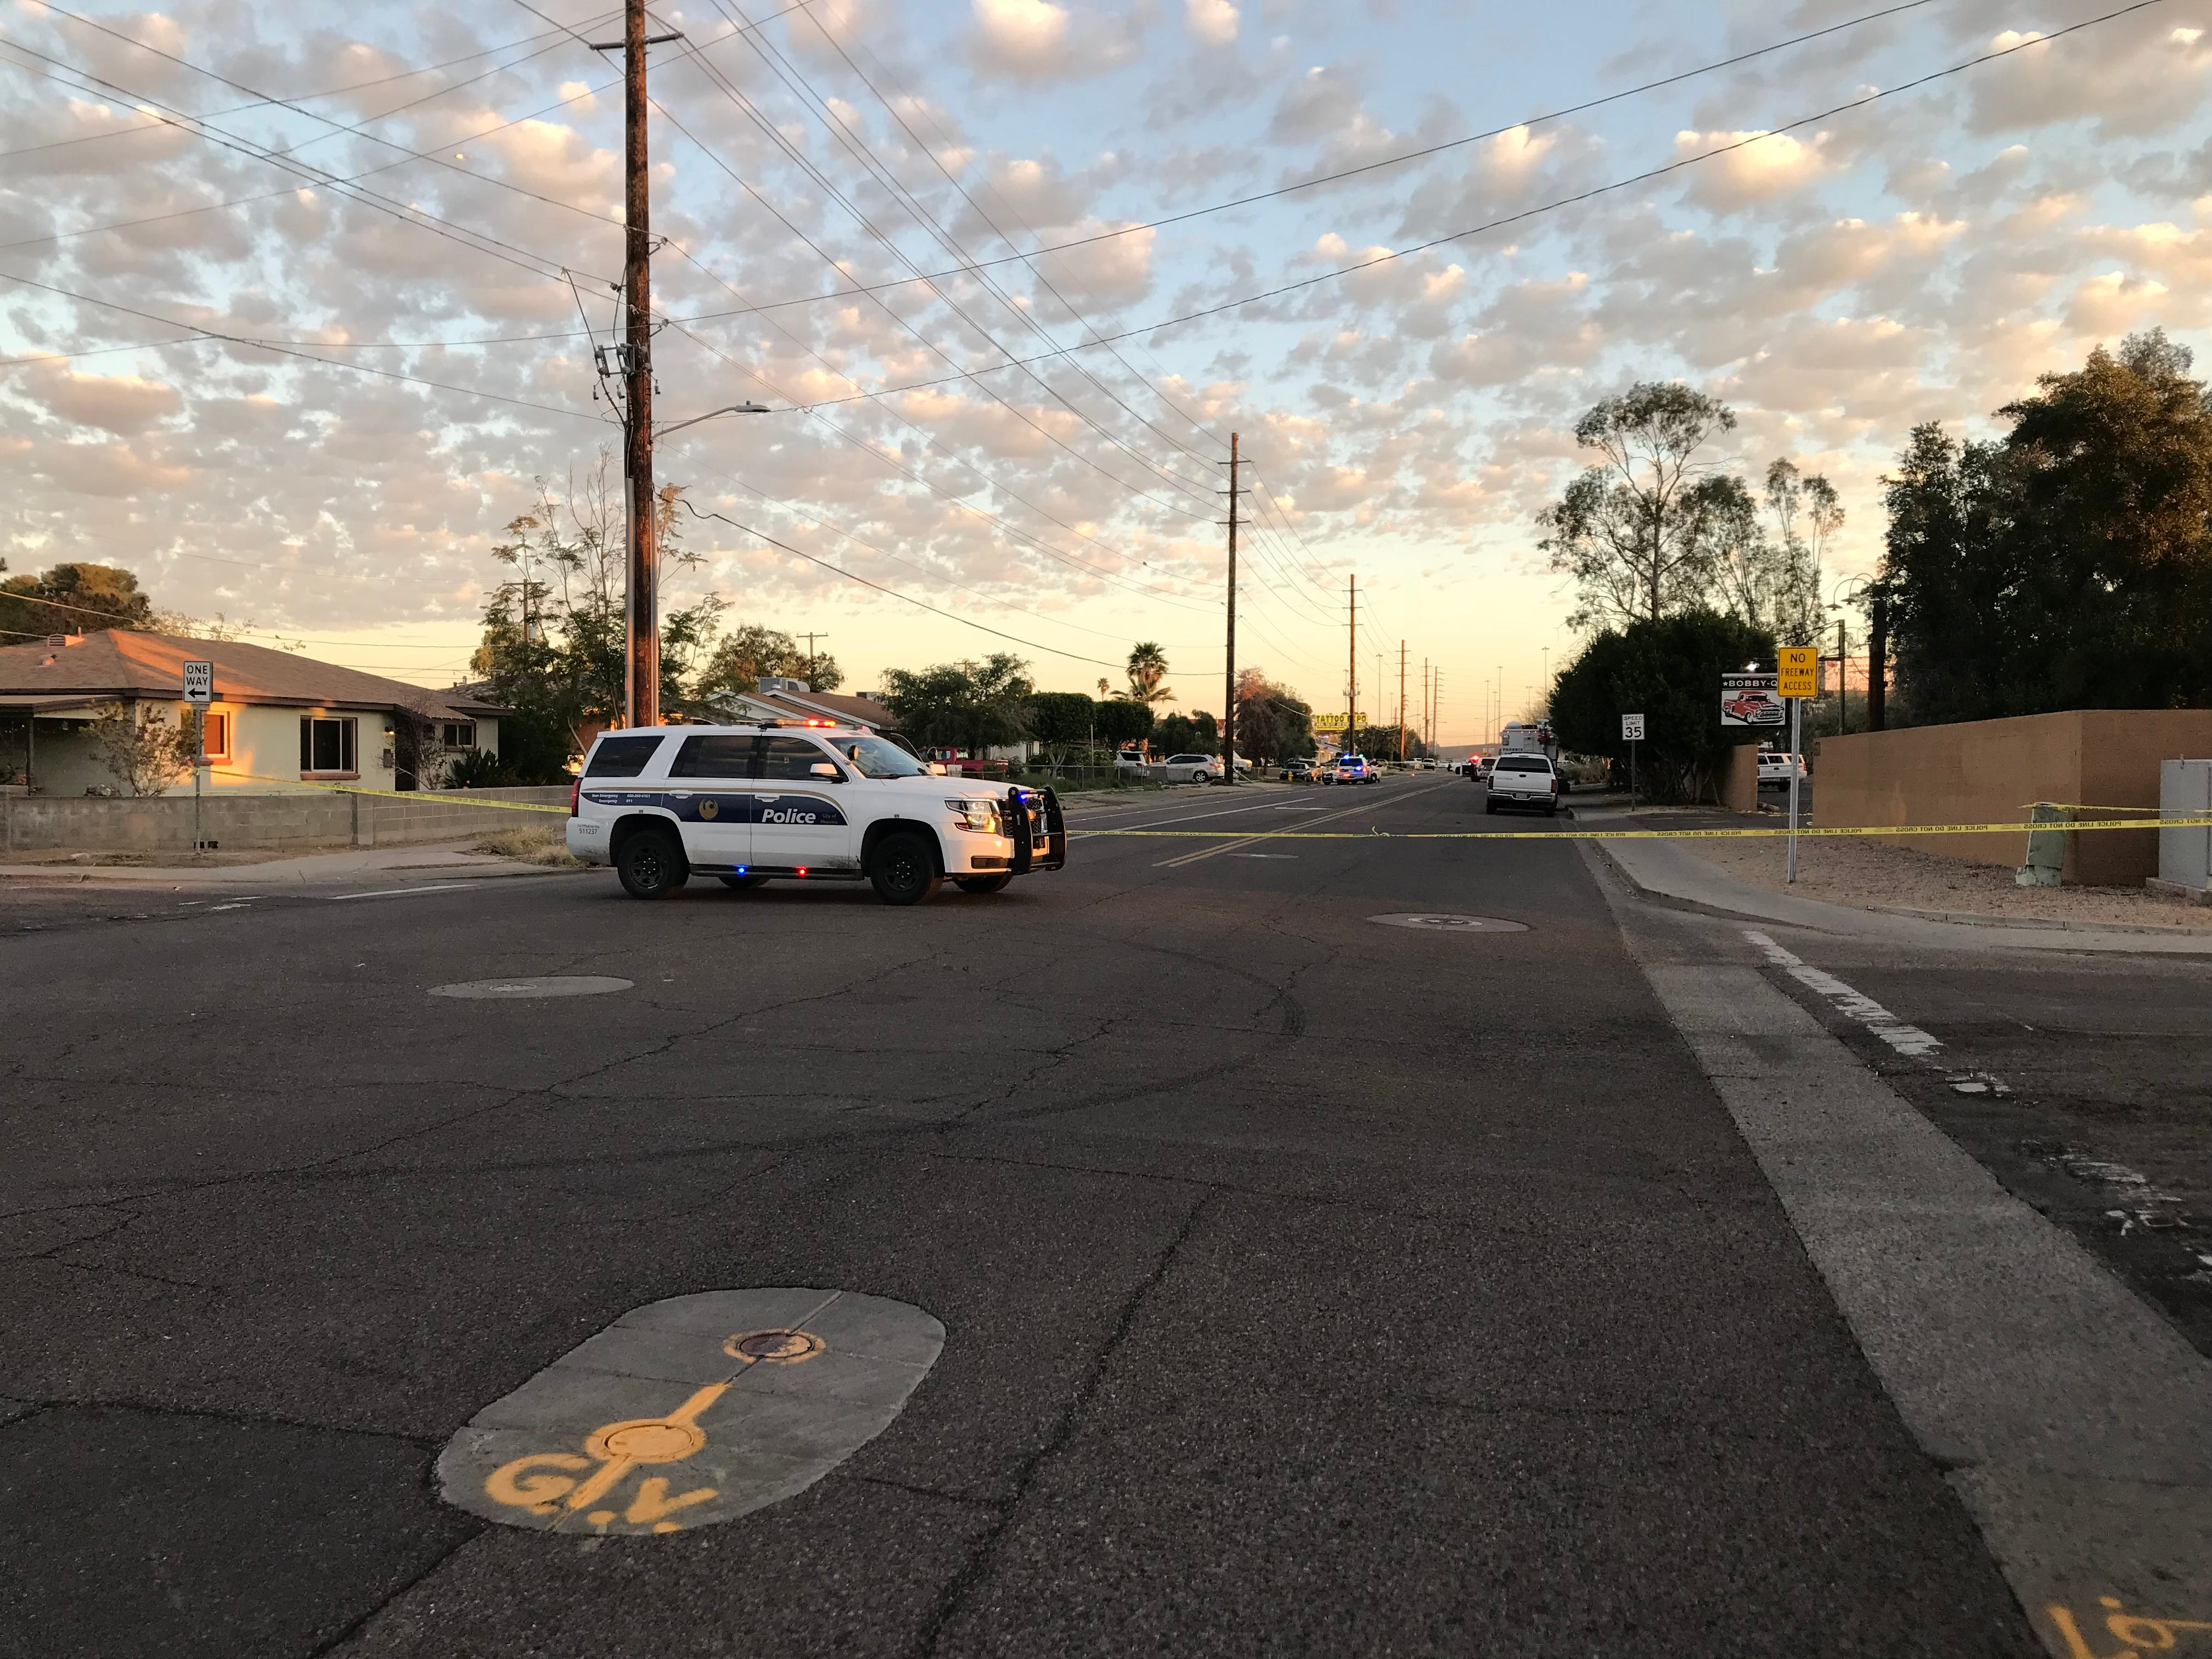 Two people died and four others were wounded in an early morning shooting March 19, 2019, in the 8500 block of North 27th Avenue in Phoenix, according to police officials.